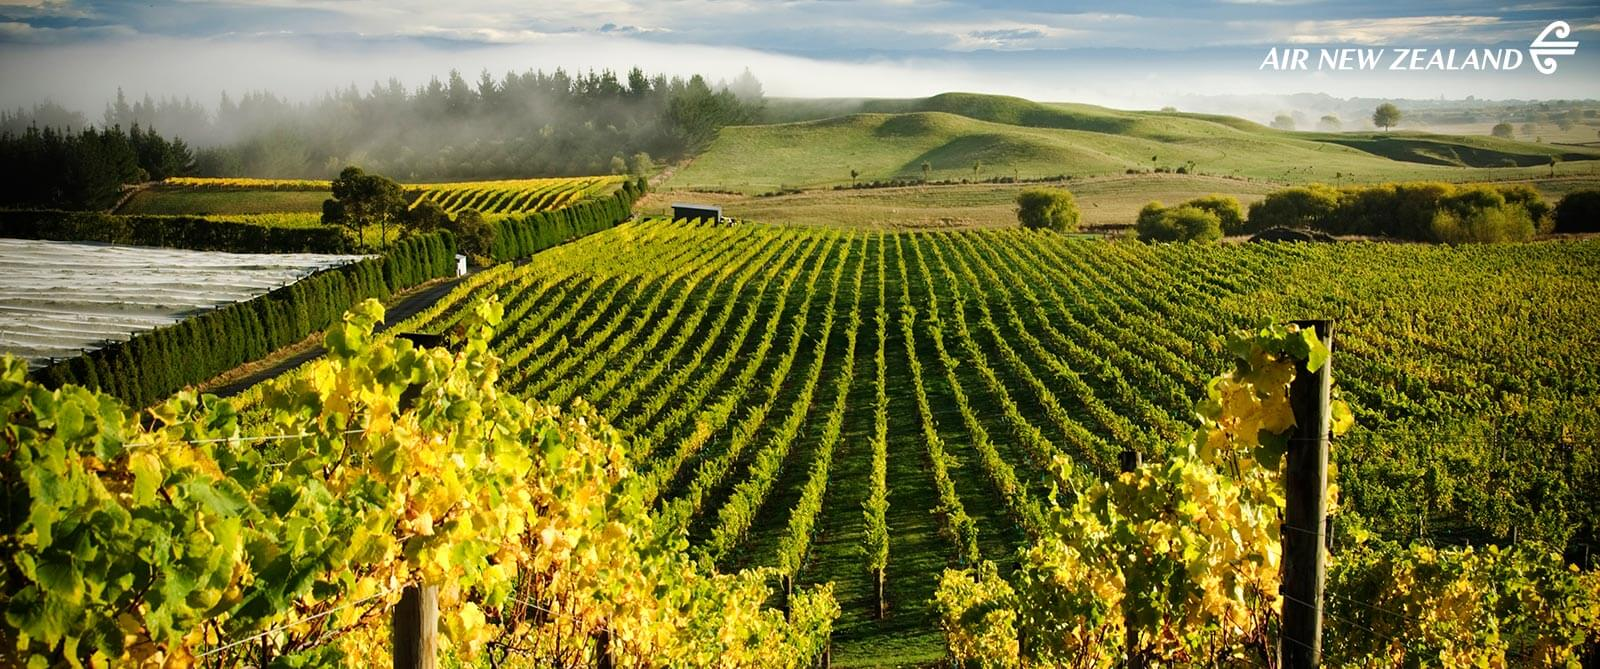 Millar Road, Hawke's Bay Vineyards - New Zealand Highlights: Scenery, Adventure, and Wine Package